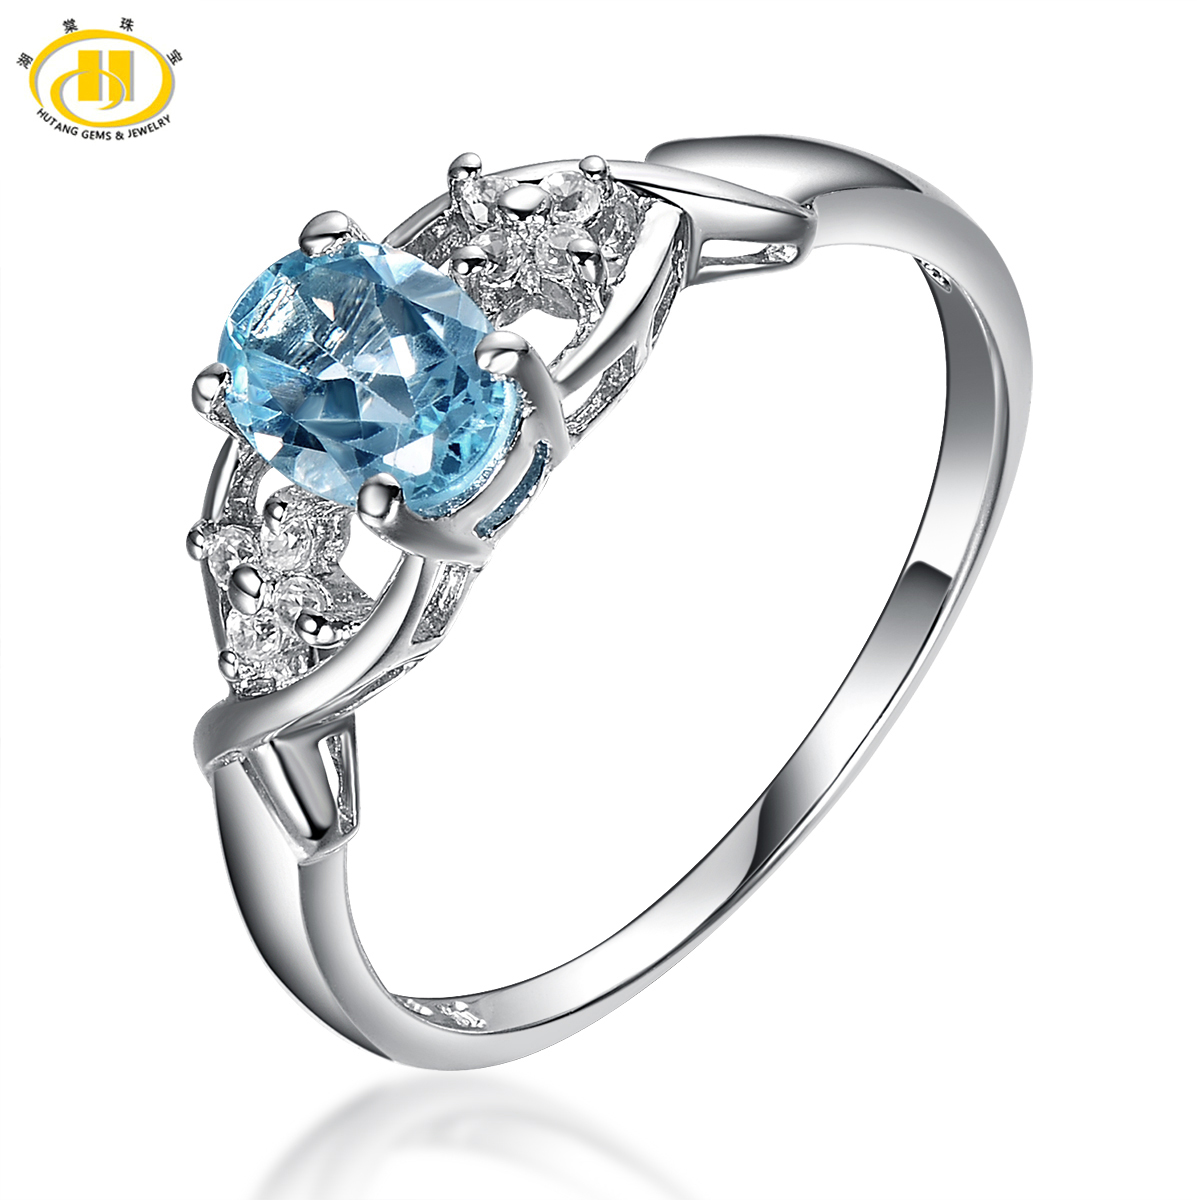 HUTANG 925 Sterling Silver Ring Classic 1ct Natural Blue Topaz Solid Rings Classic Gemstone For Women's wedding Fine Jewelry